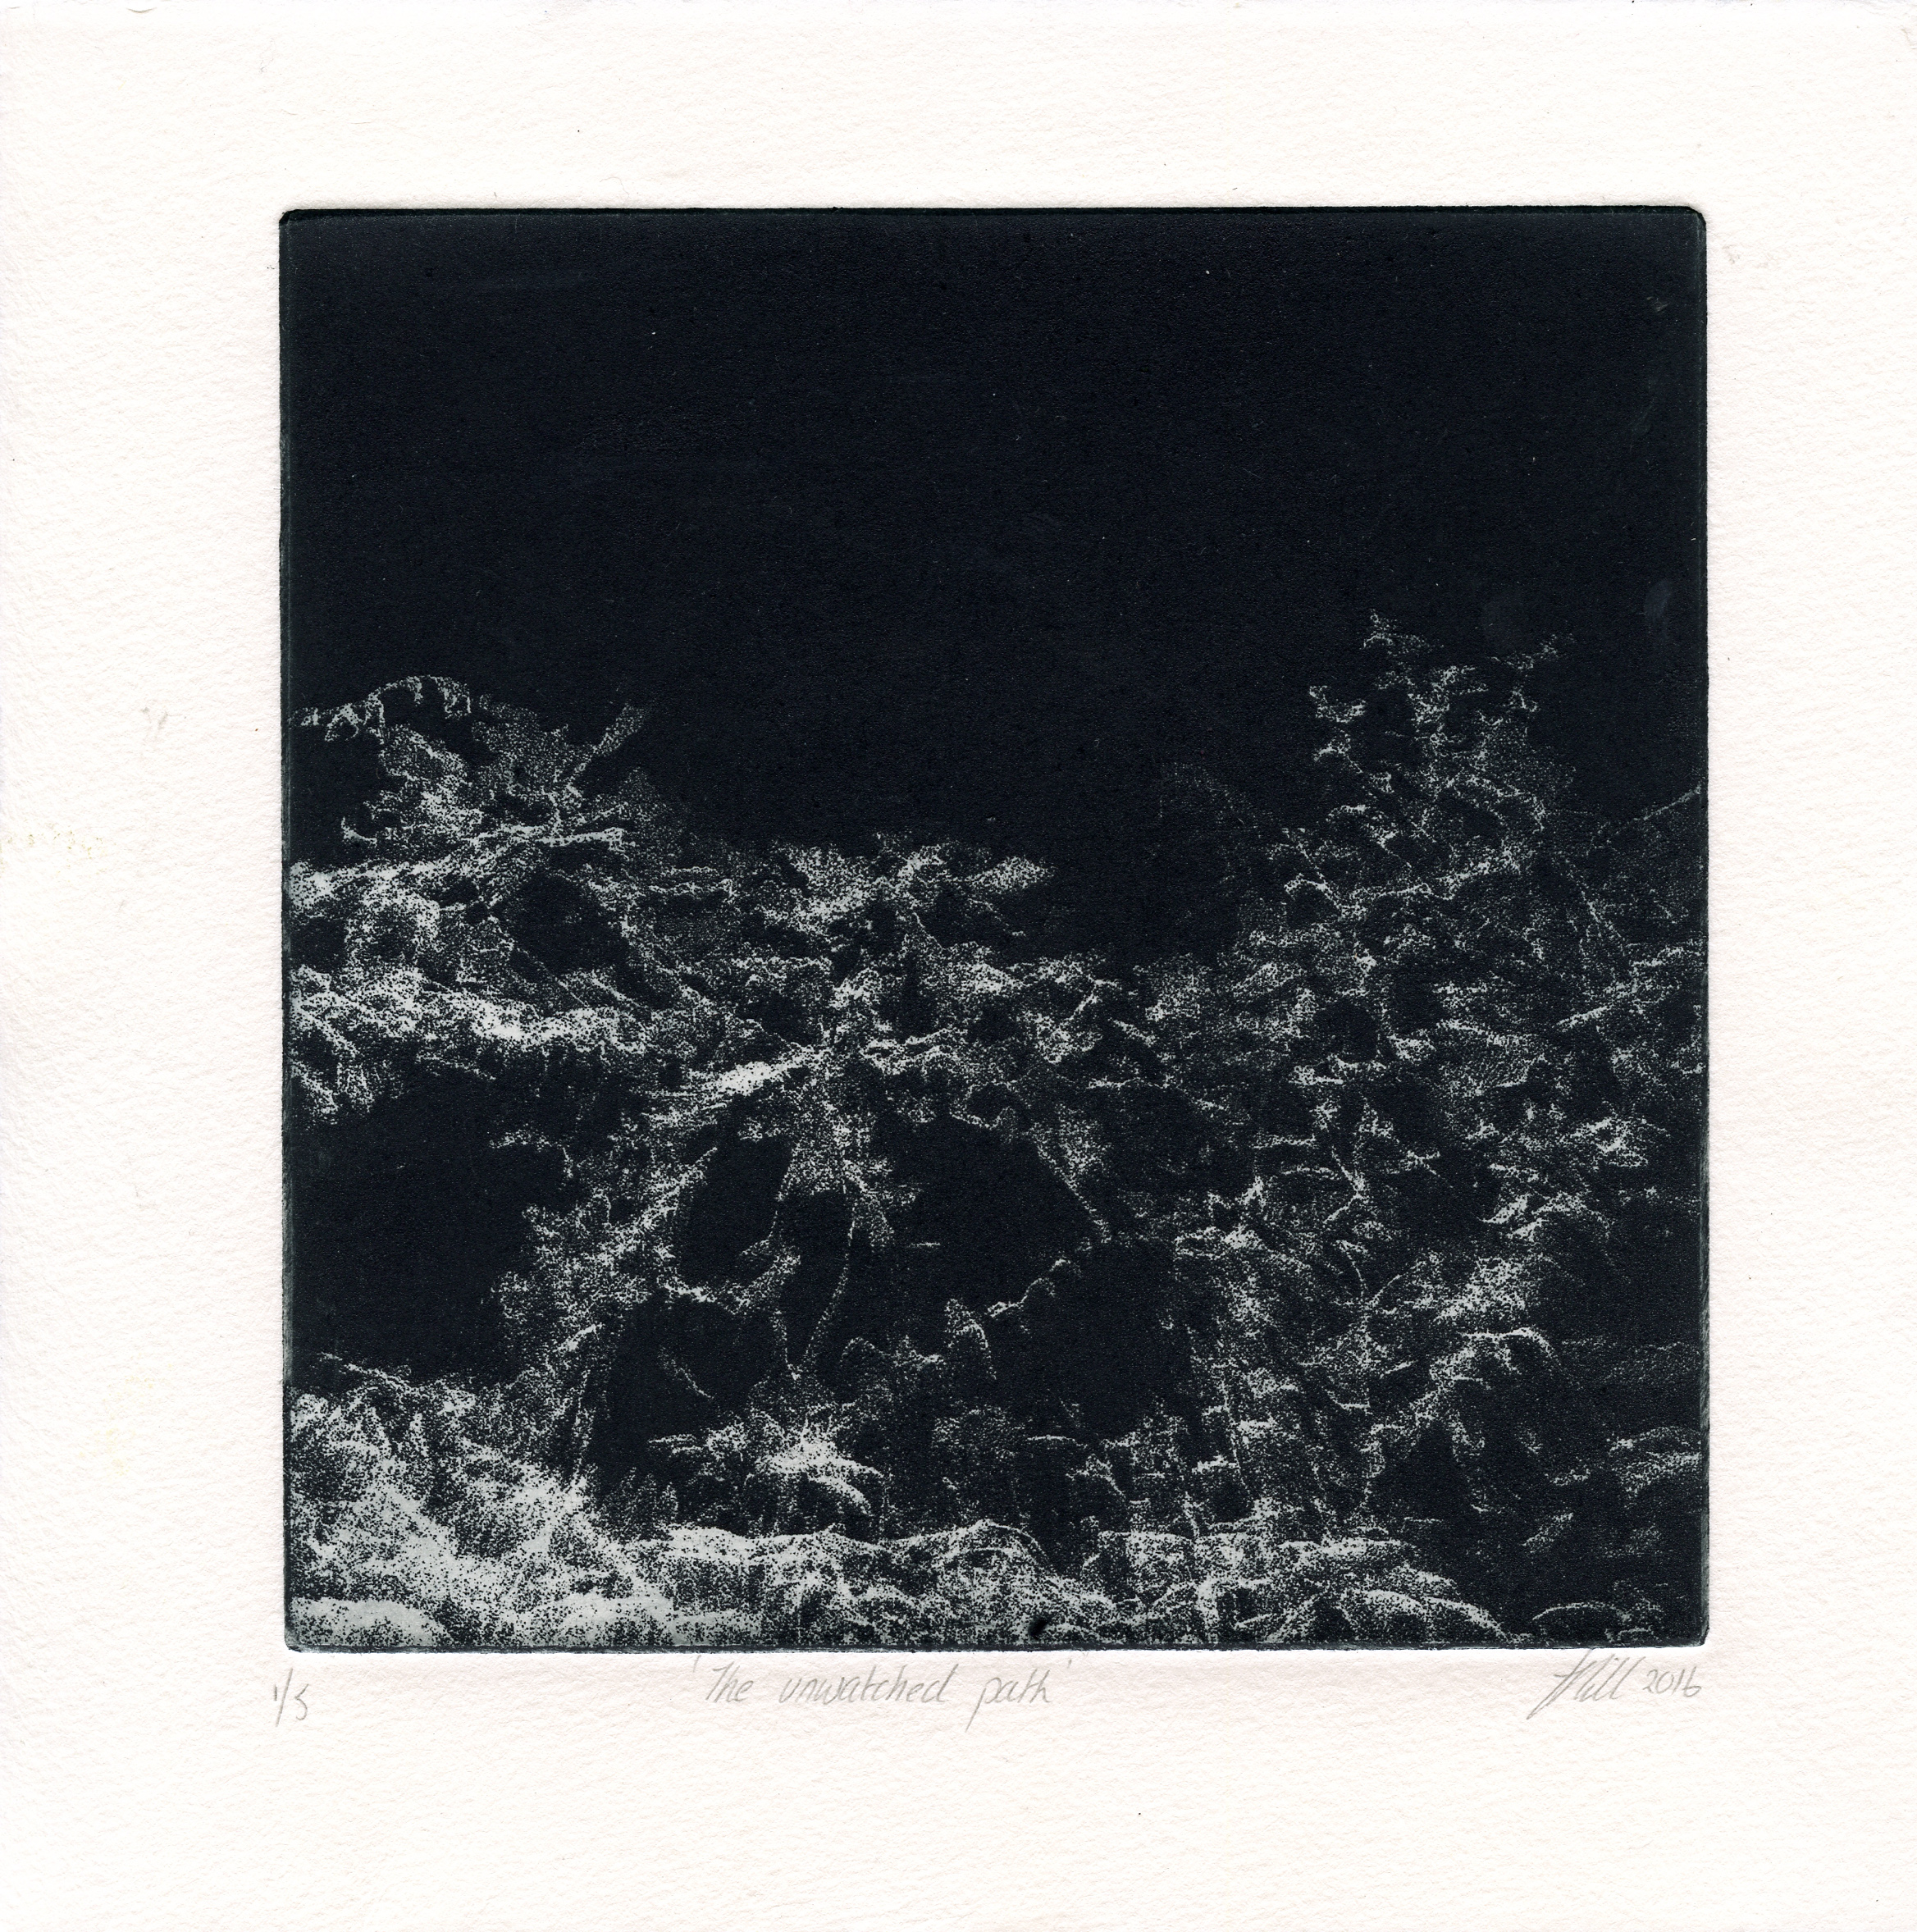 Hill Tracy, The Unwanted Path photo-intaglio